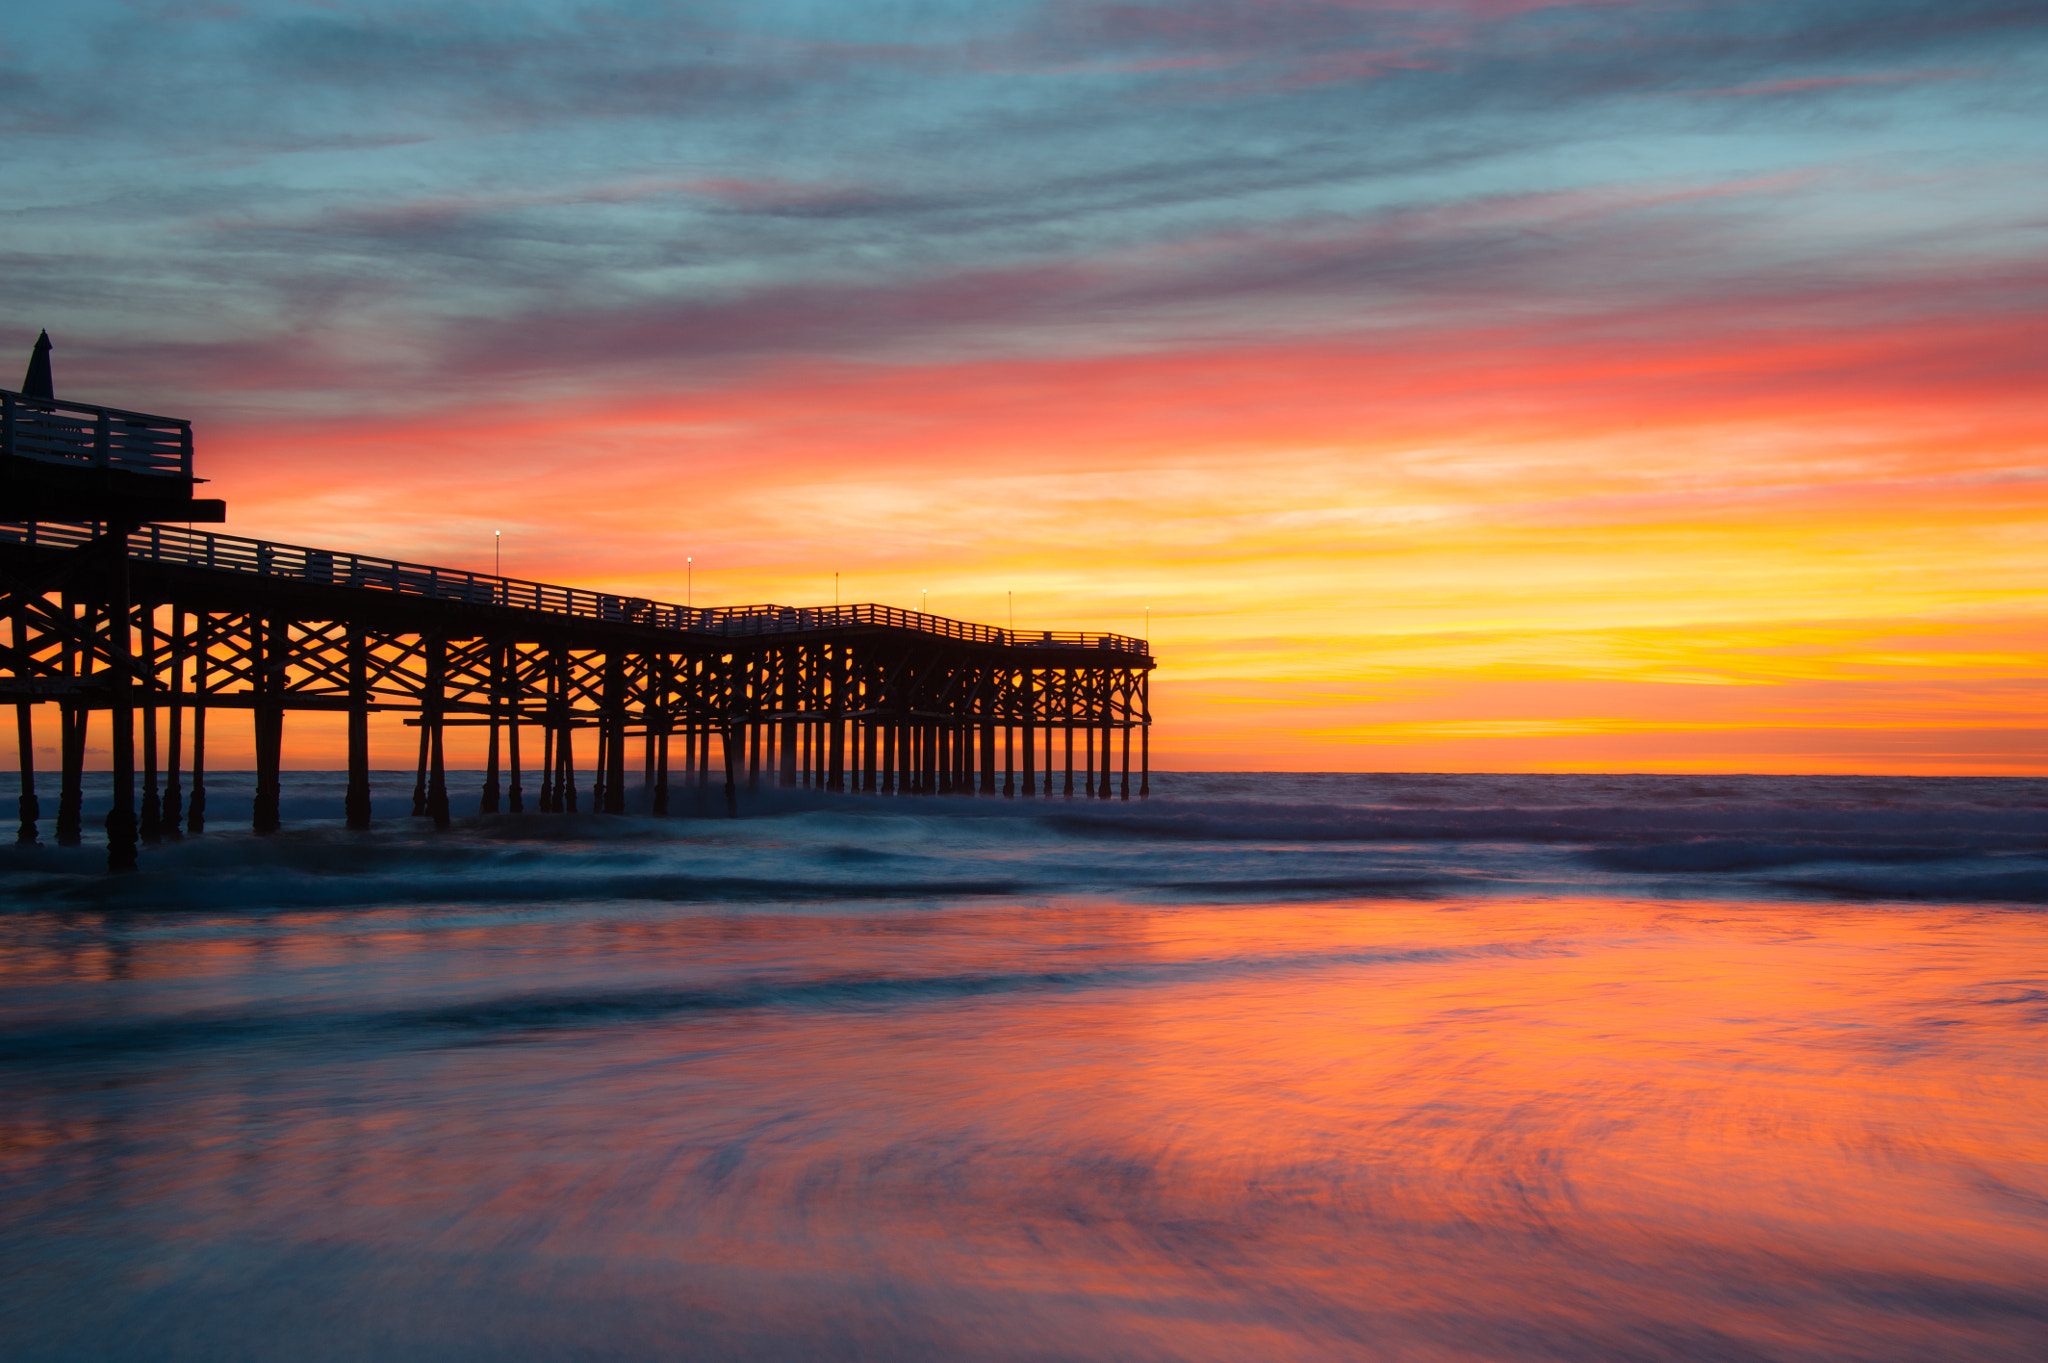 Photograph Crystal Pier at Sunset by David Bartz on 500px